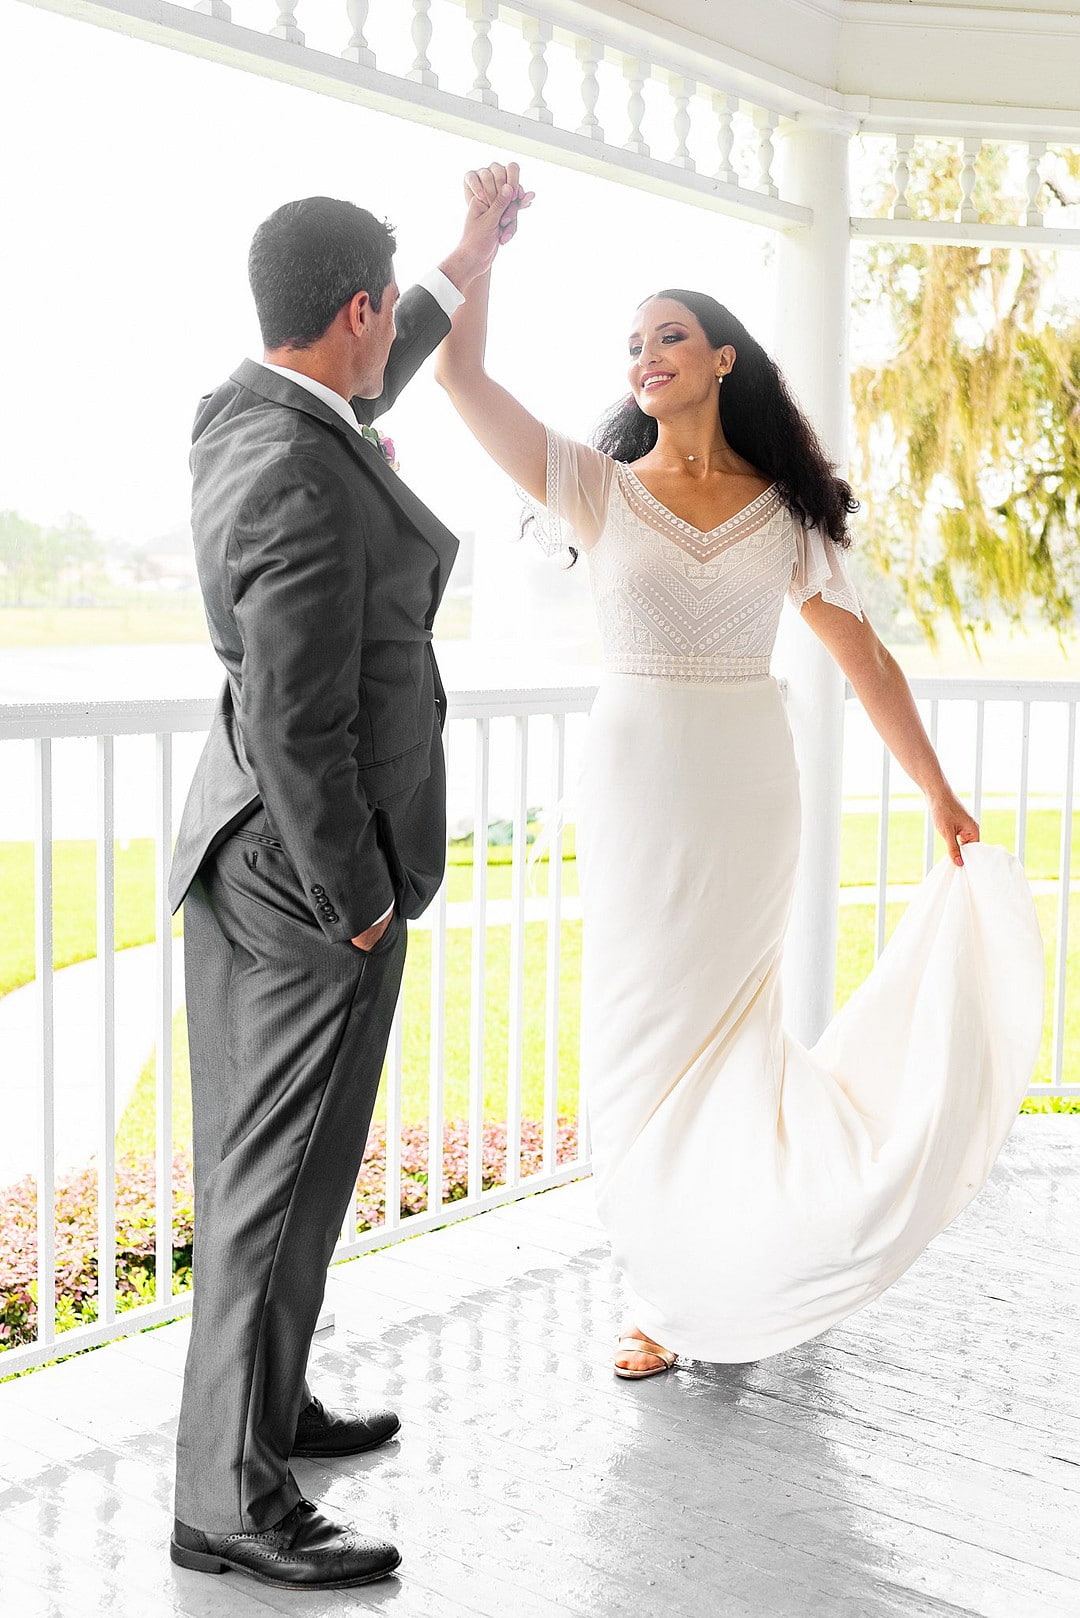 groom twirls bride around on the porch of wedding venue during dusty pastel inspired wedding shoot